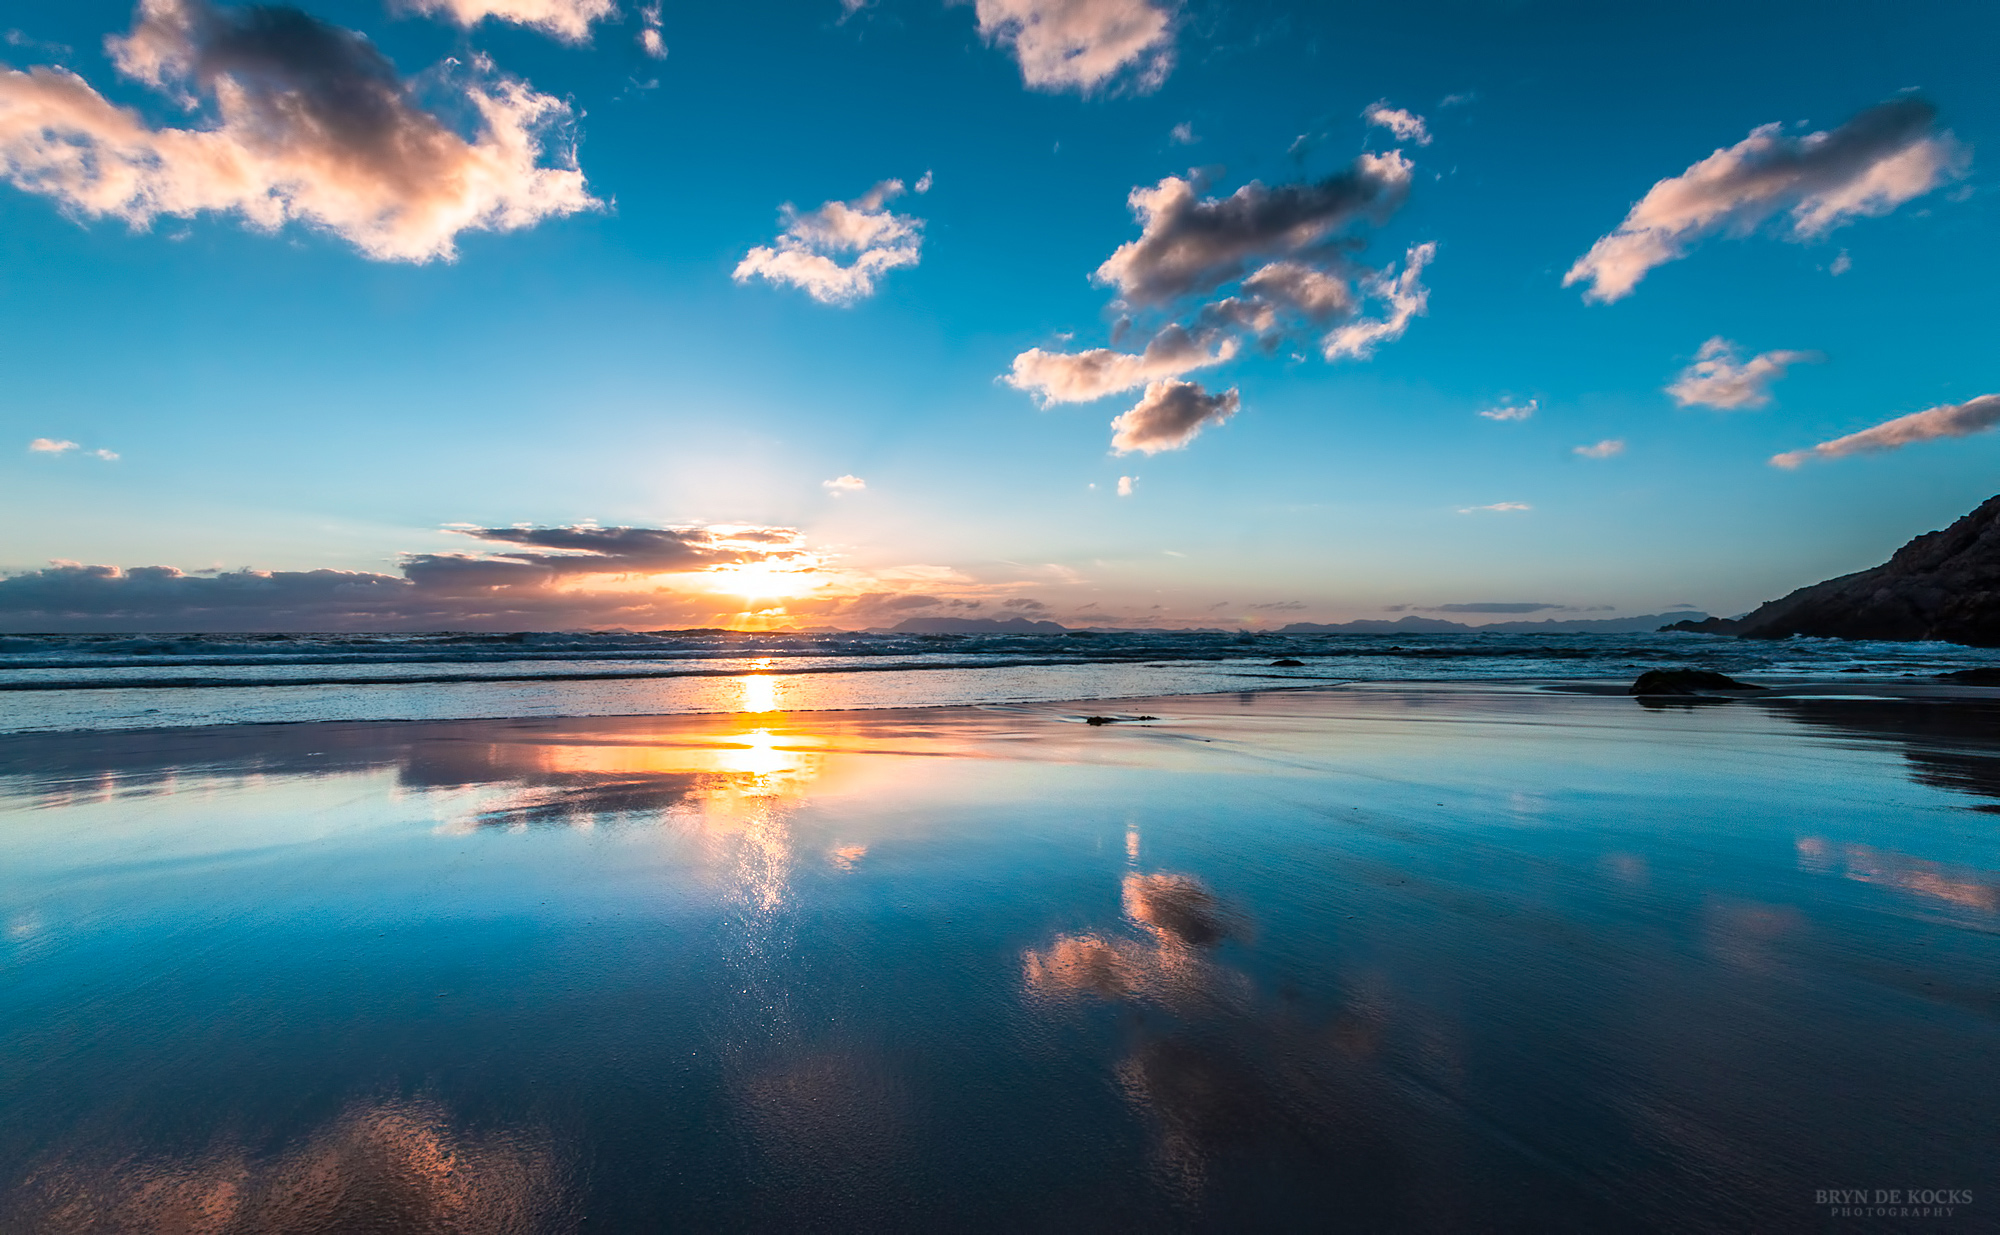 Reflections of clouds at sunset